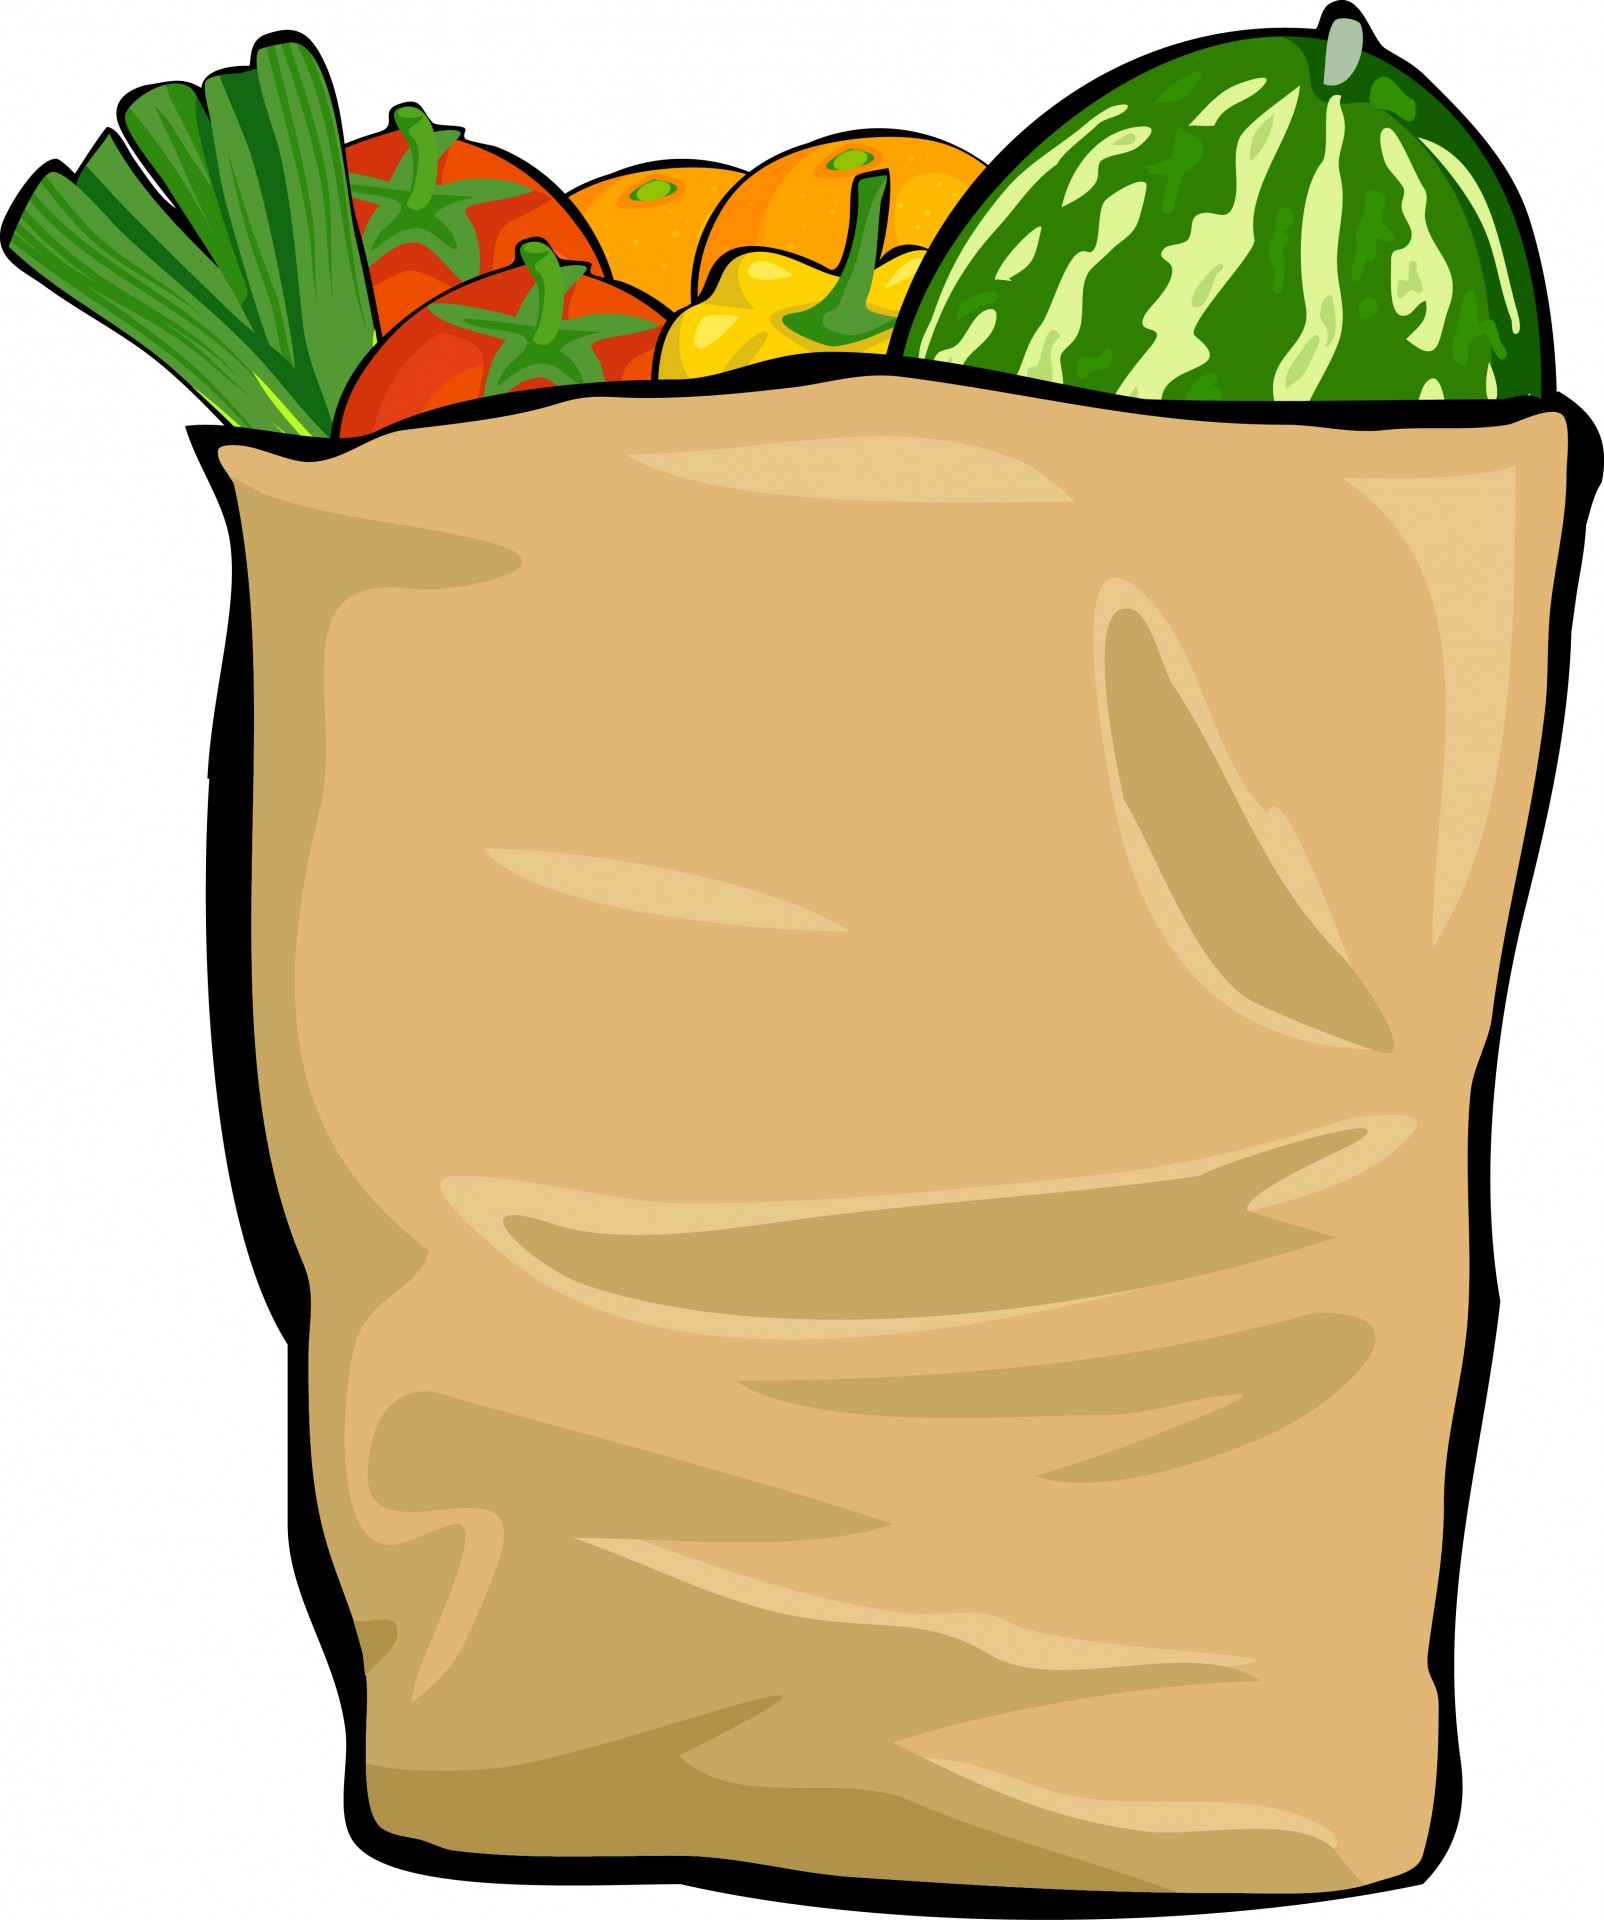 hight resolution of bag of food clipart grocery bag